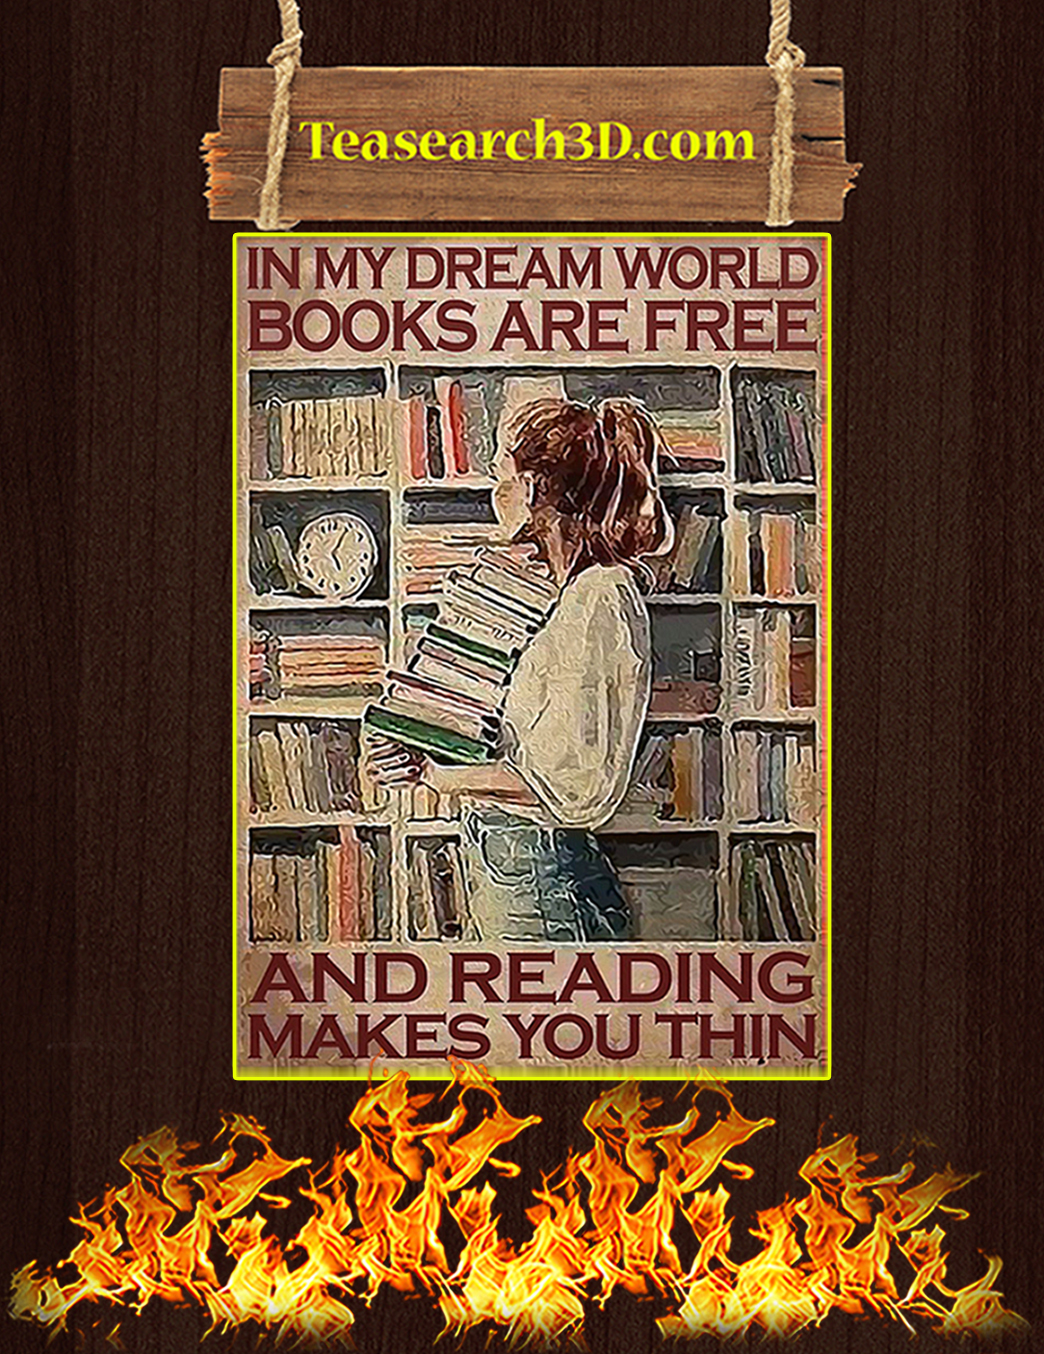 In my dream world books are free and reading makes you thin poster A1